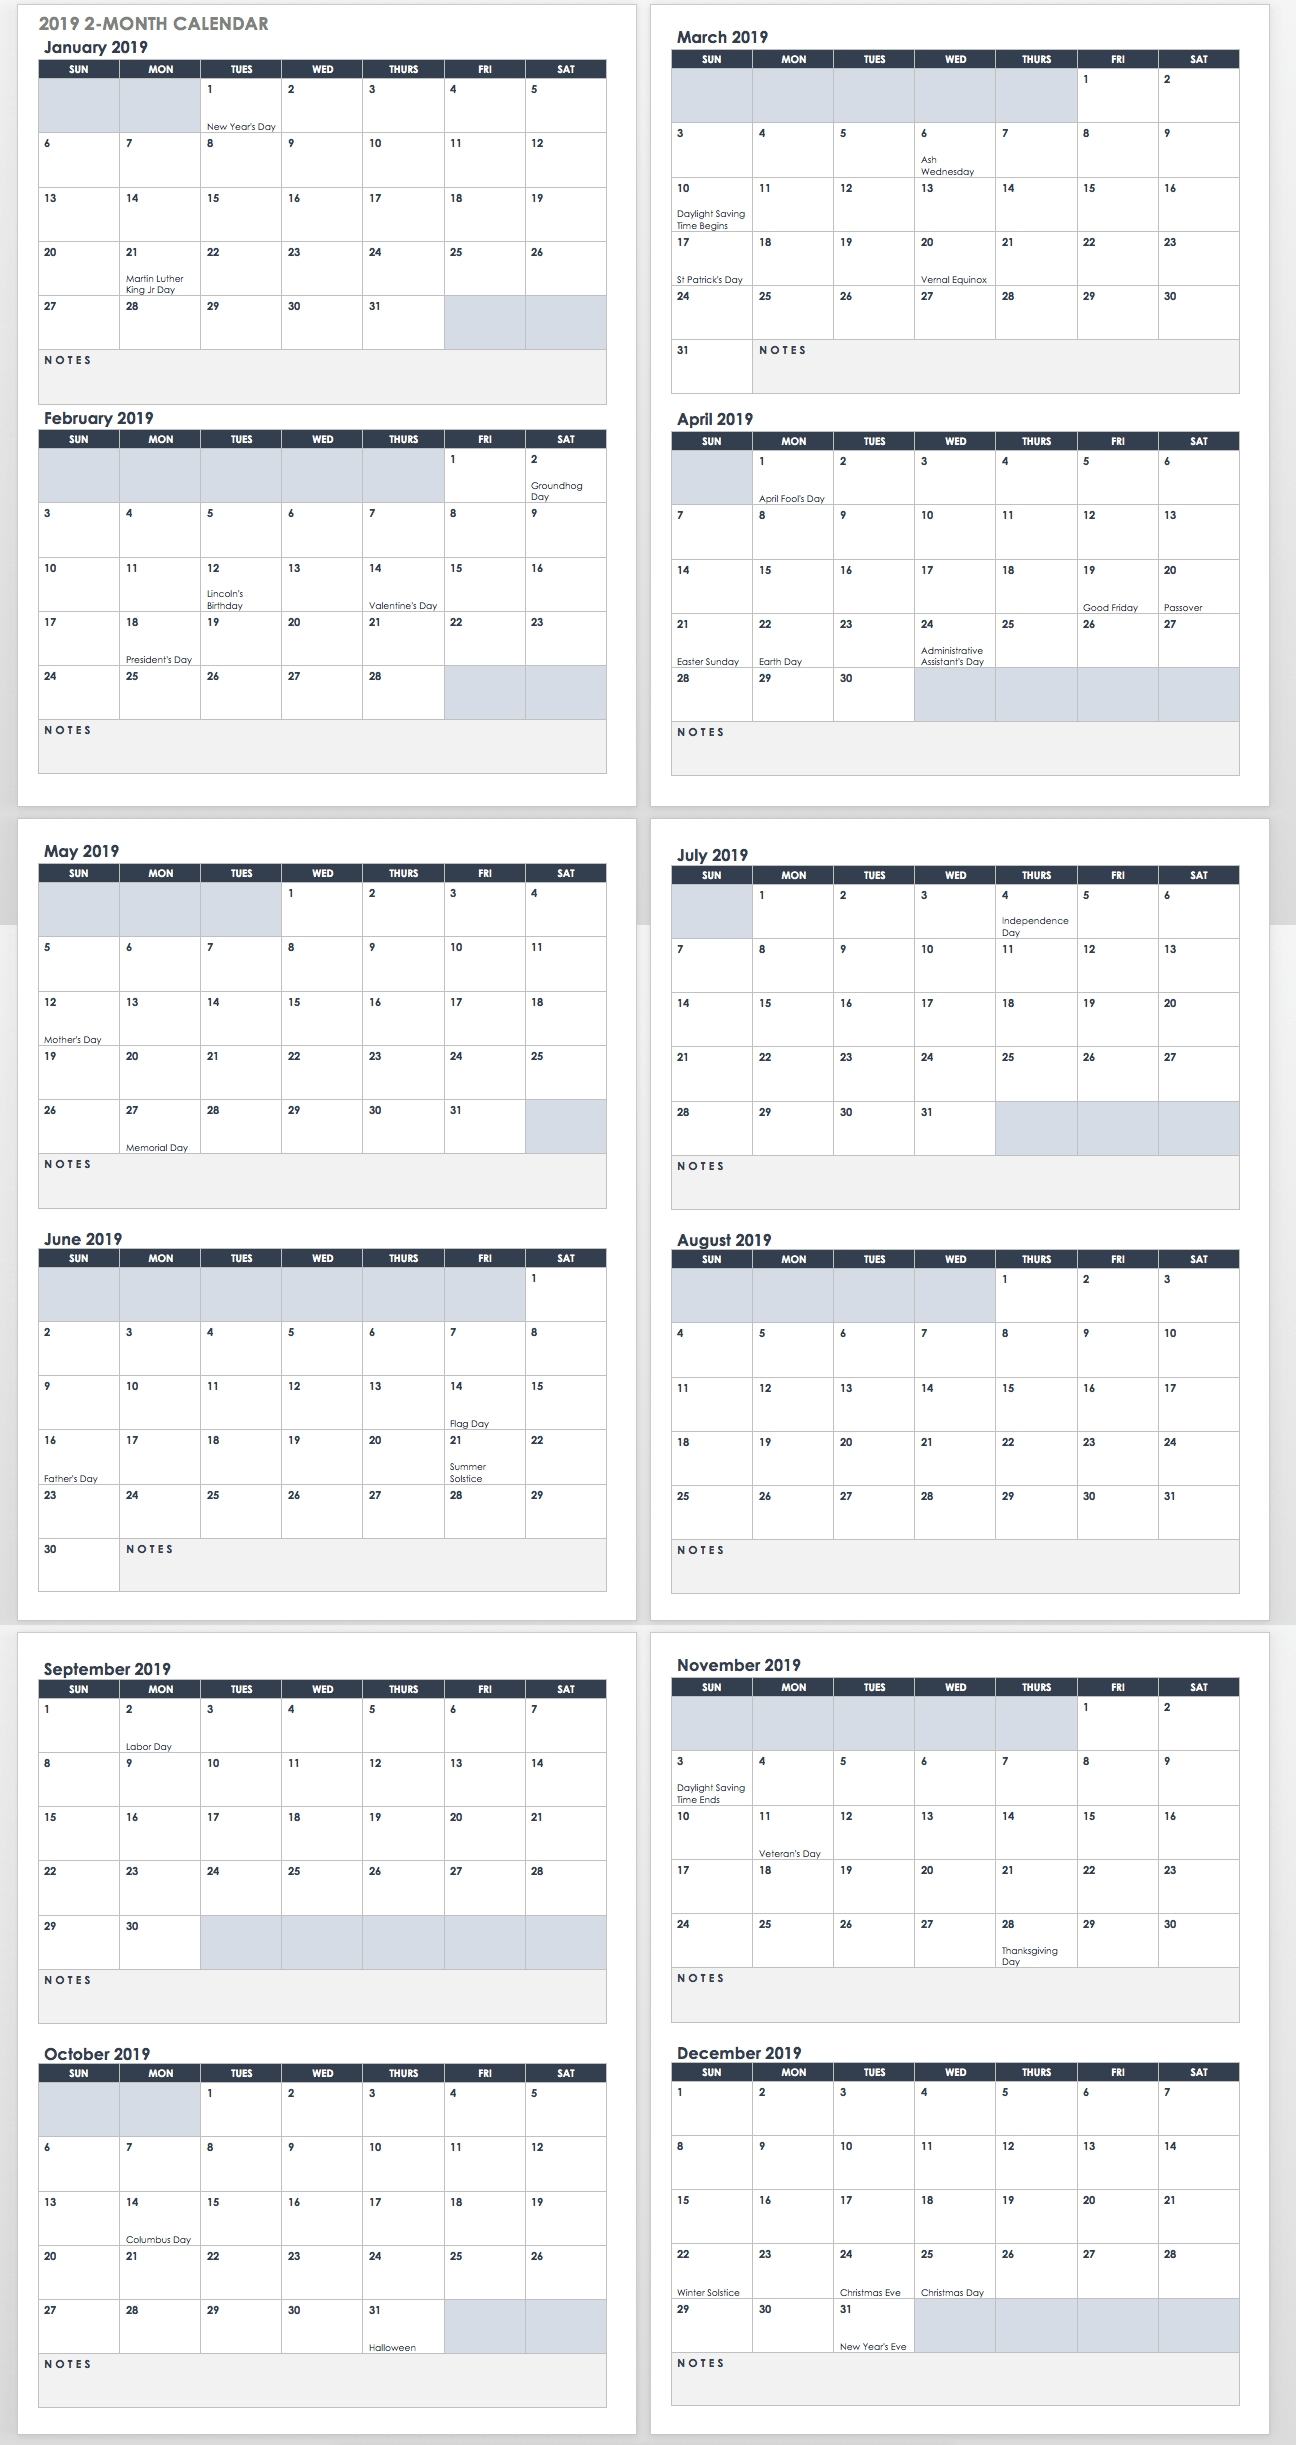 15 Free Monthly Calendar Templates | Smartsheet for 2 Month Calendar Template Printable